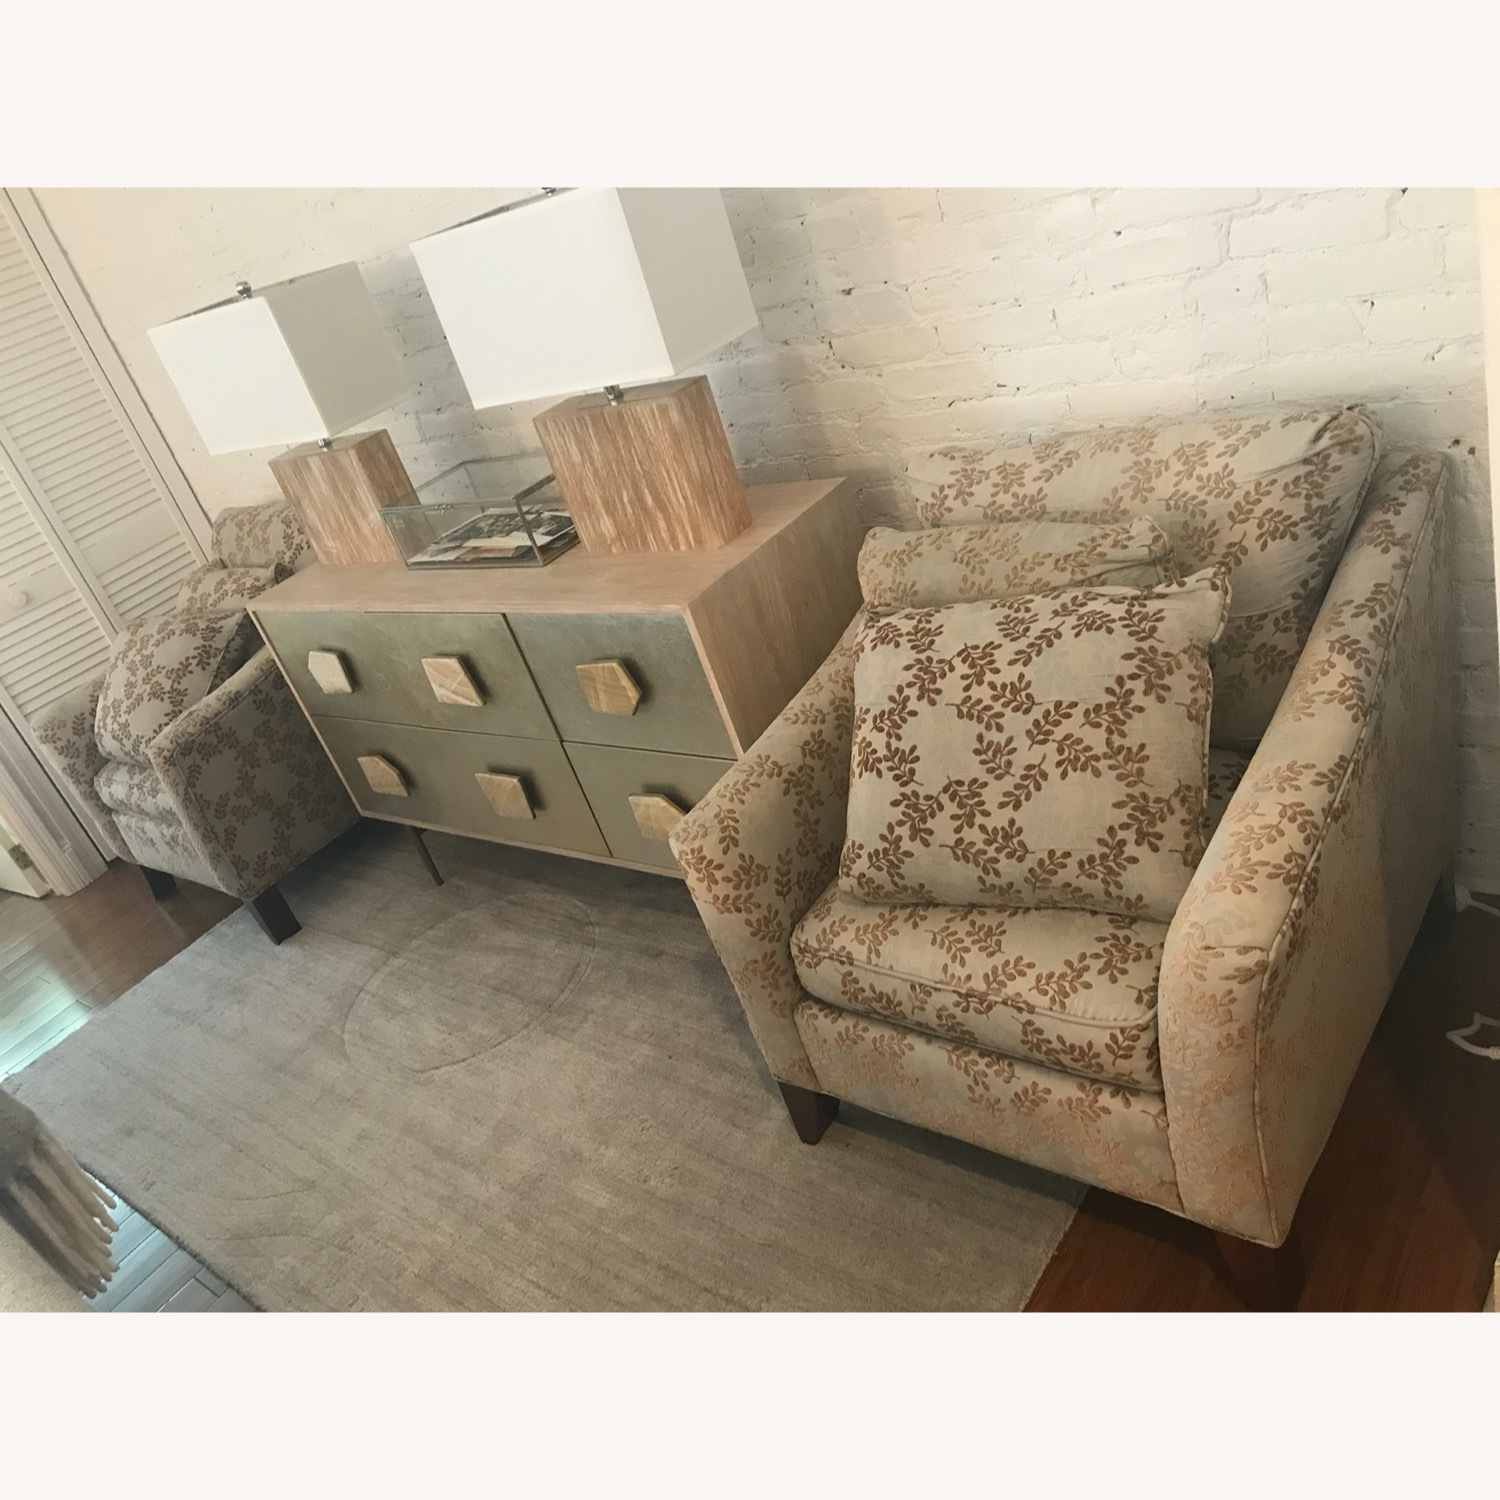 2 Ethan Allen Neutral Patterned Arm Chairs - image-6